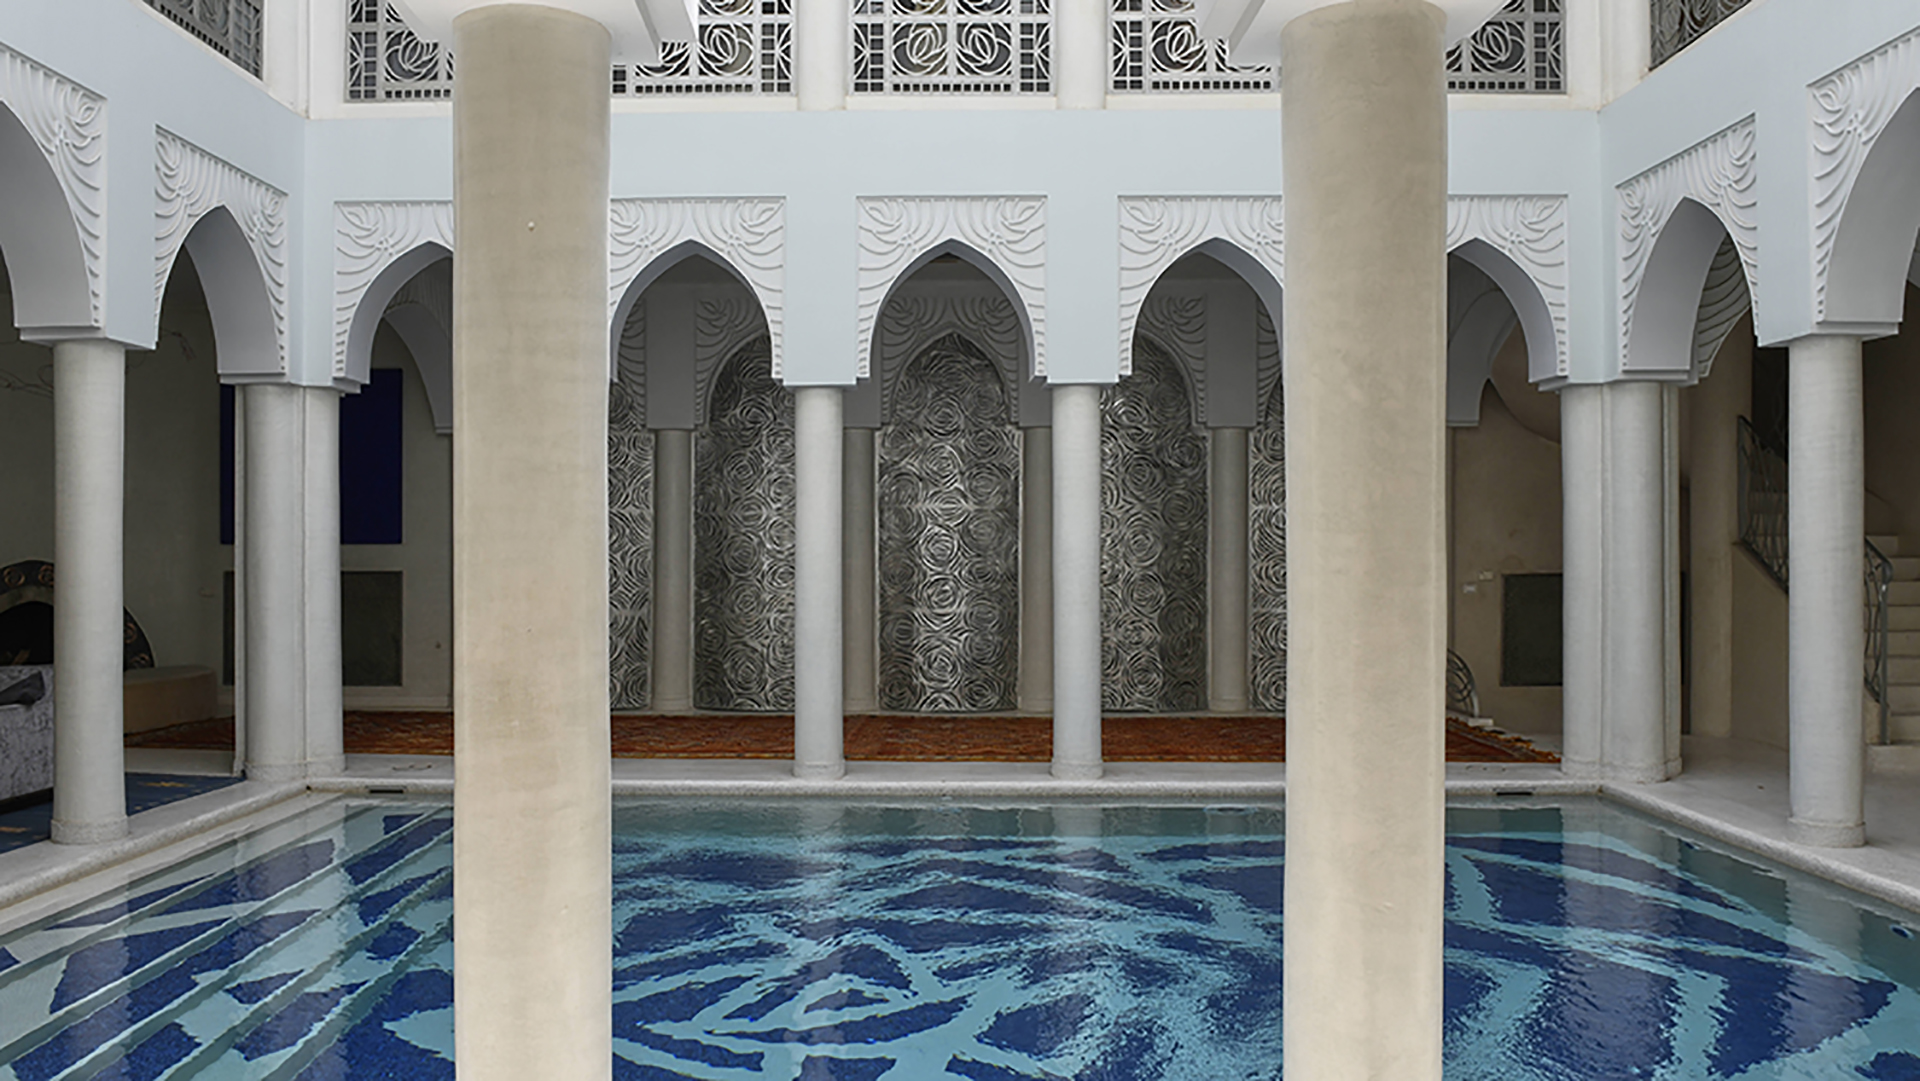 How This Marrakech Riad Was Transformed Into a Sprawling 'Secret' Art-Filled Mansion